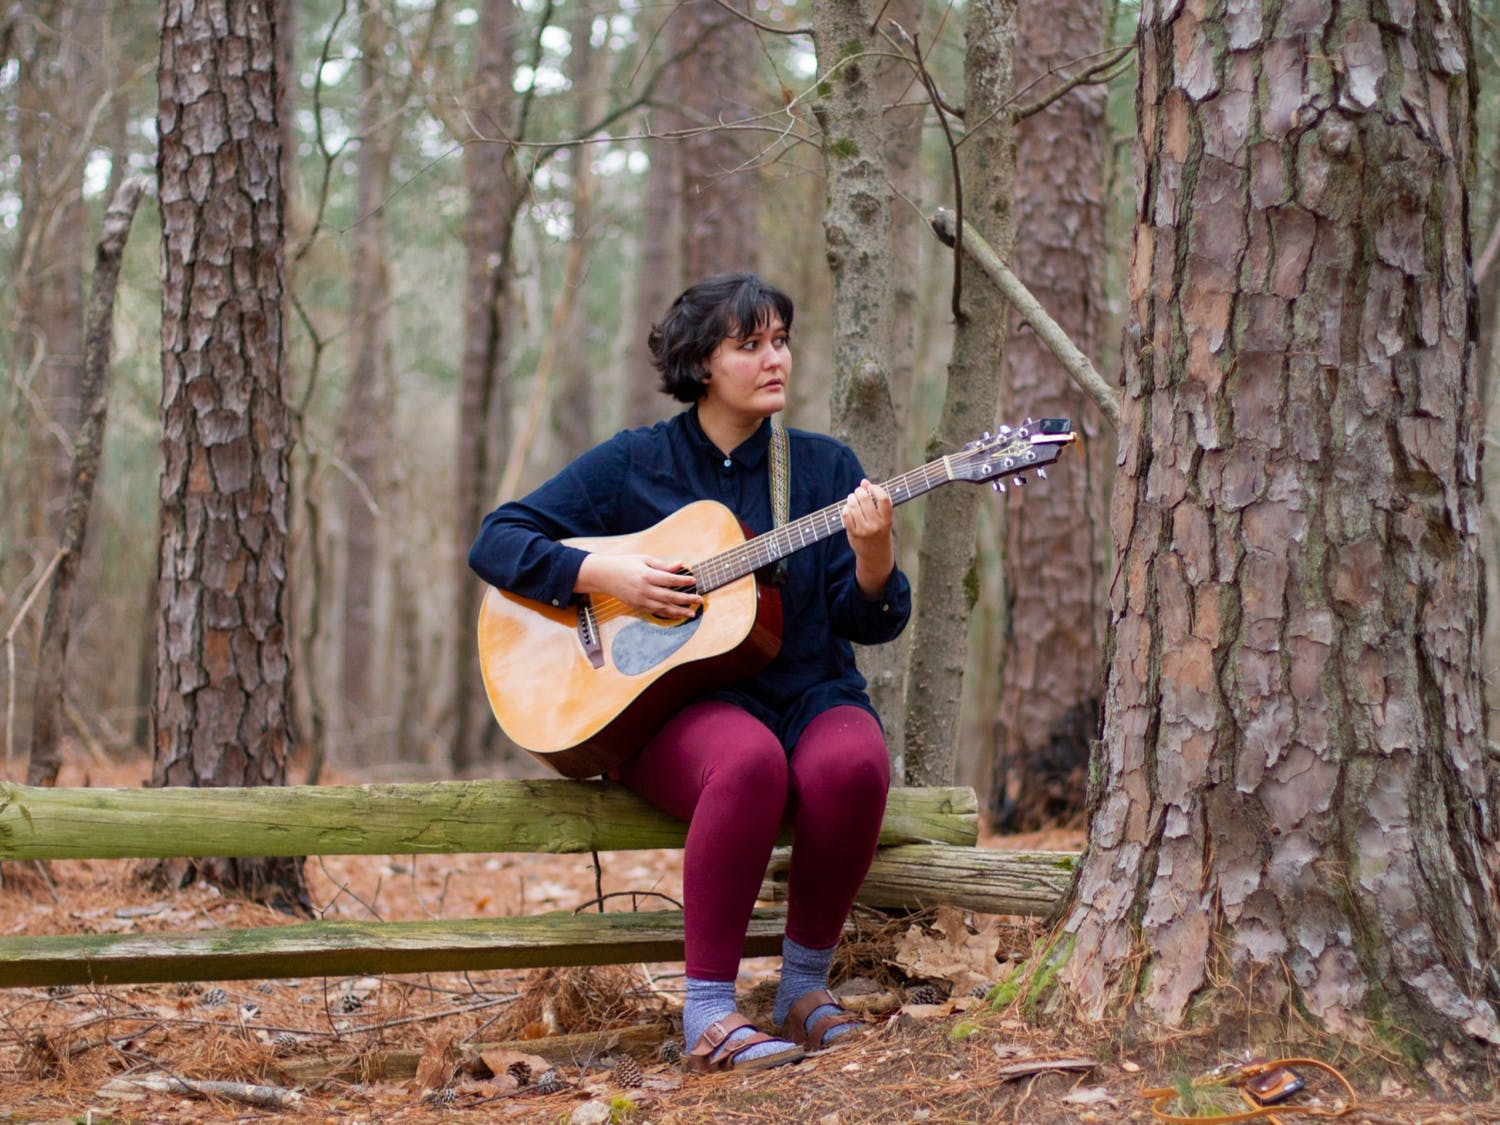 """Remona Jeannine, a Cary-based singer songwriter, plays her song """"Hollow Mouth"""" from her debut album """"Open Space"""" in Cary on Tuesday, Mar. 23, 2021. """"My dad played [the guitar] at home, at church, all over the place,"""" says Jeannine, pictured above with the guitar her father left her when he died."""